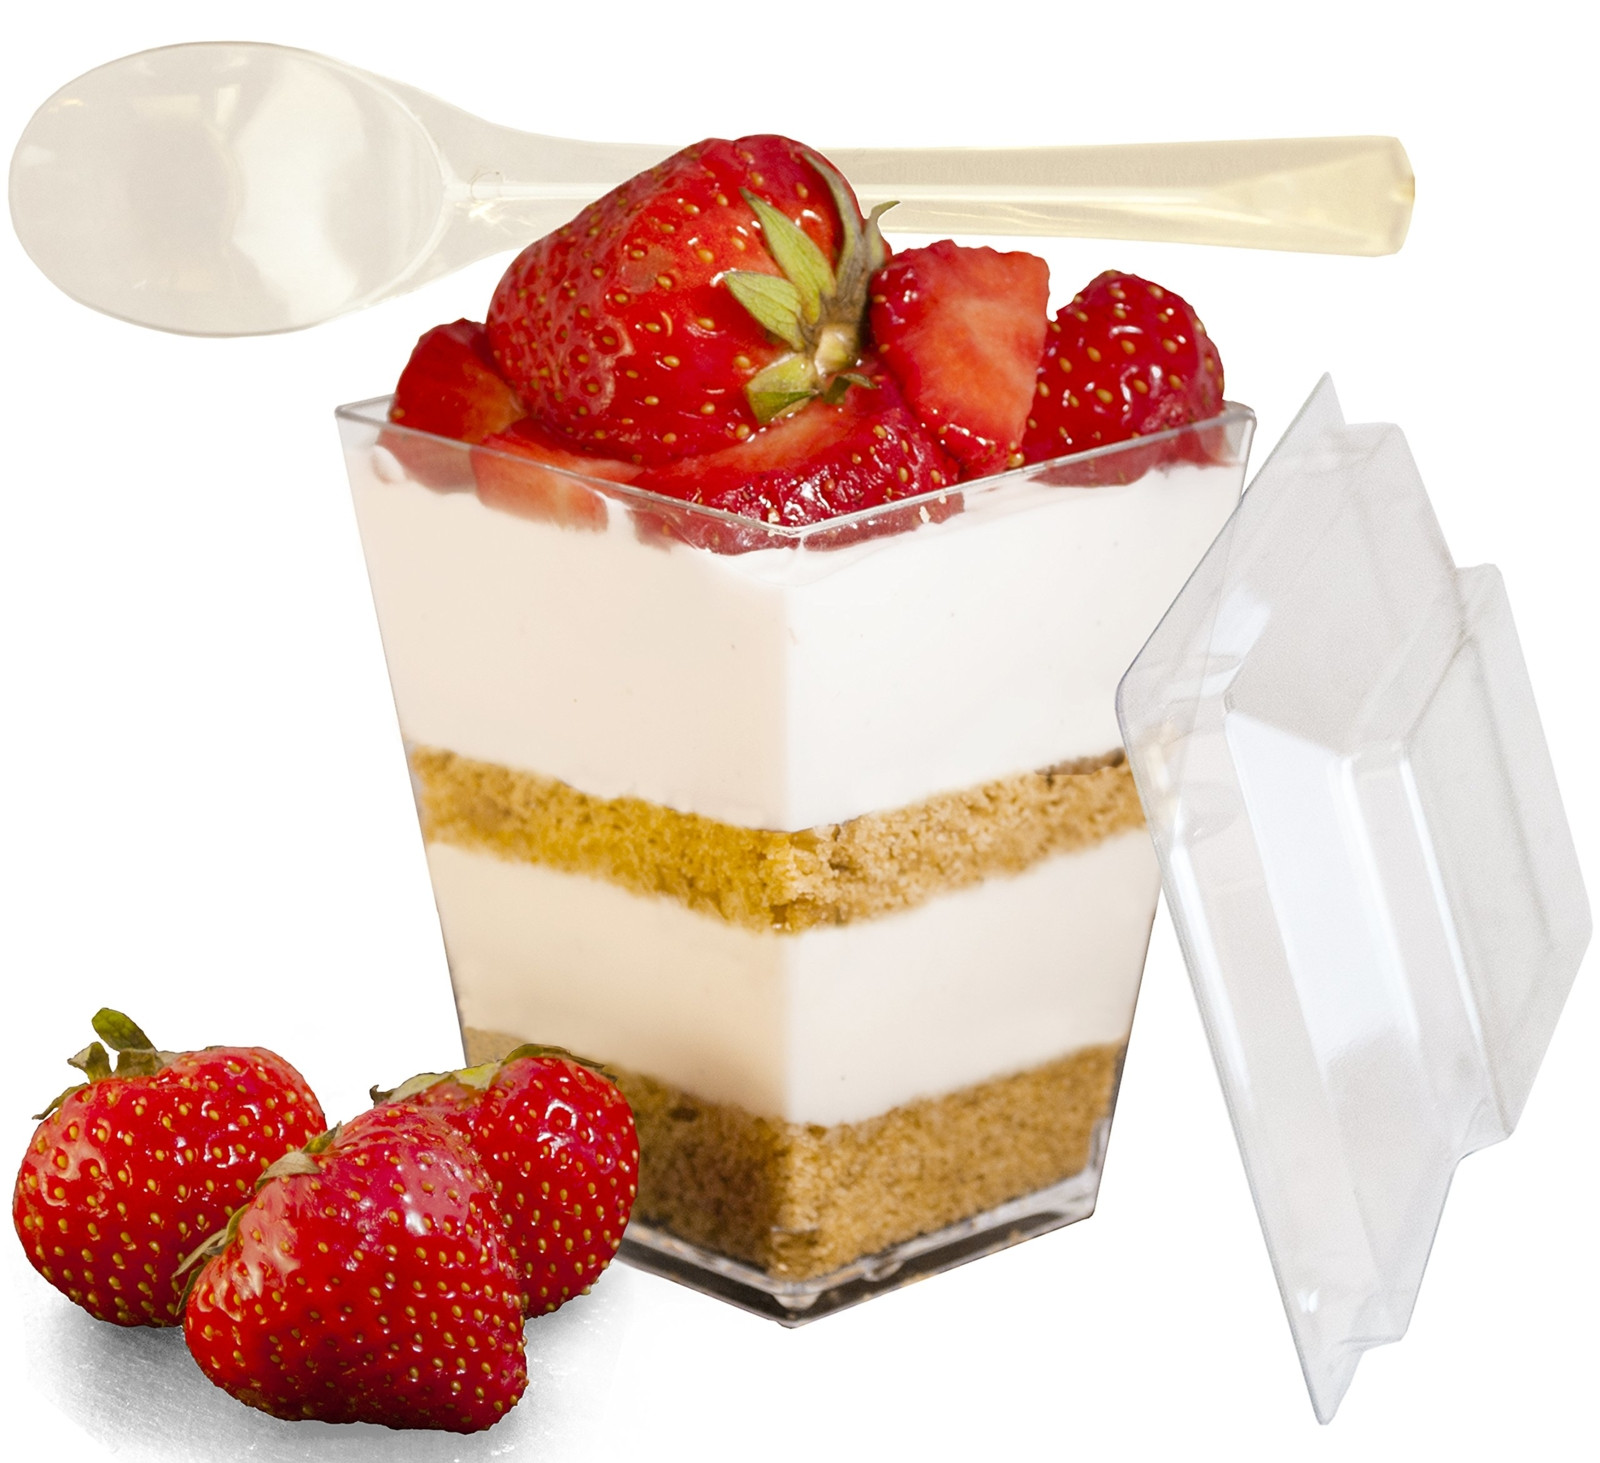 Plastic Dessert Cups  Dessert Cups with Lids and Spoons Plastic 30 PACK Clear